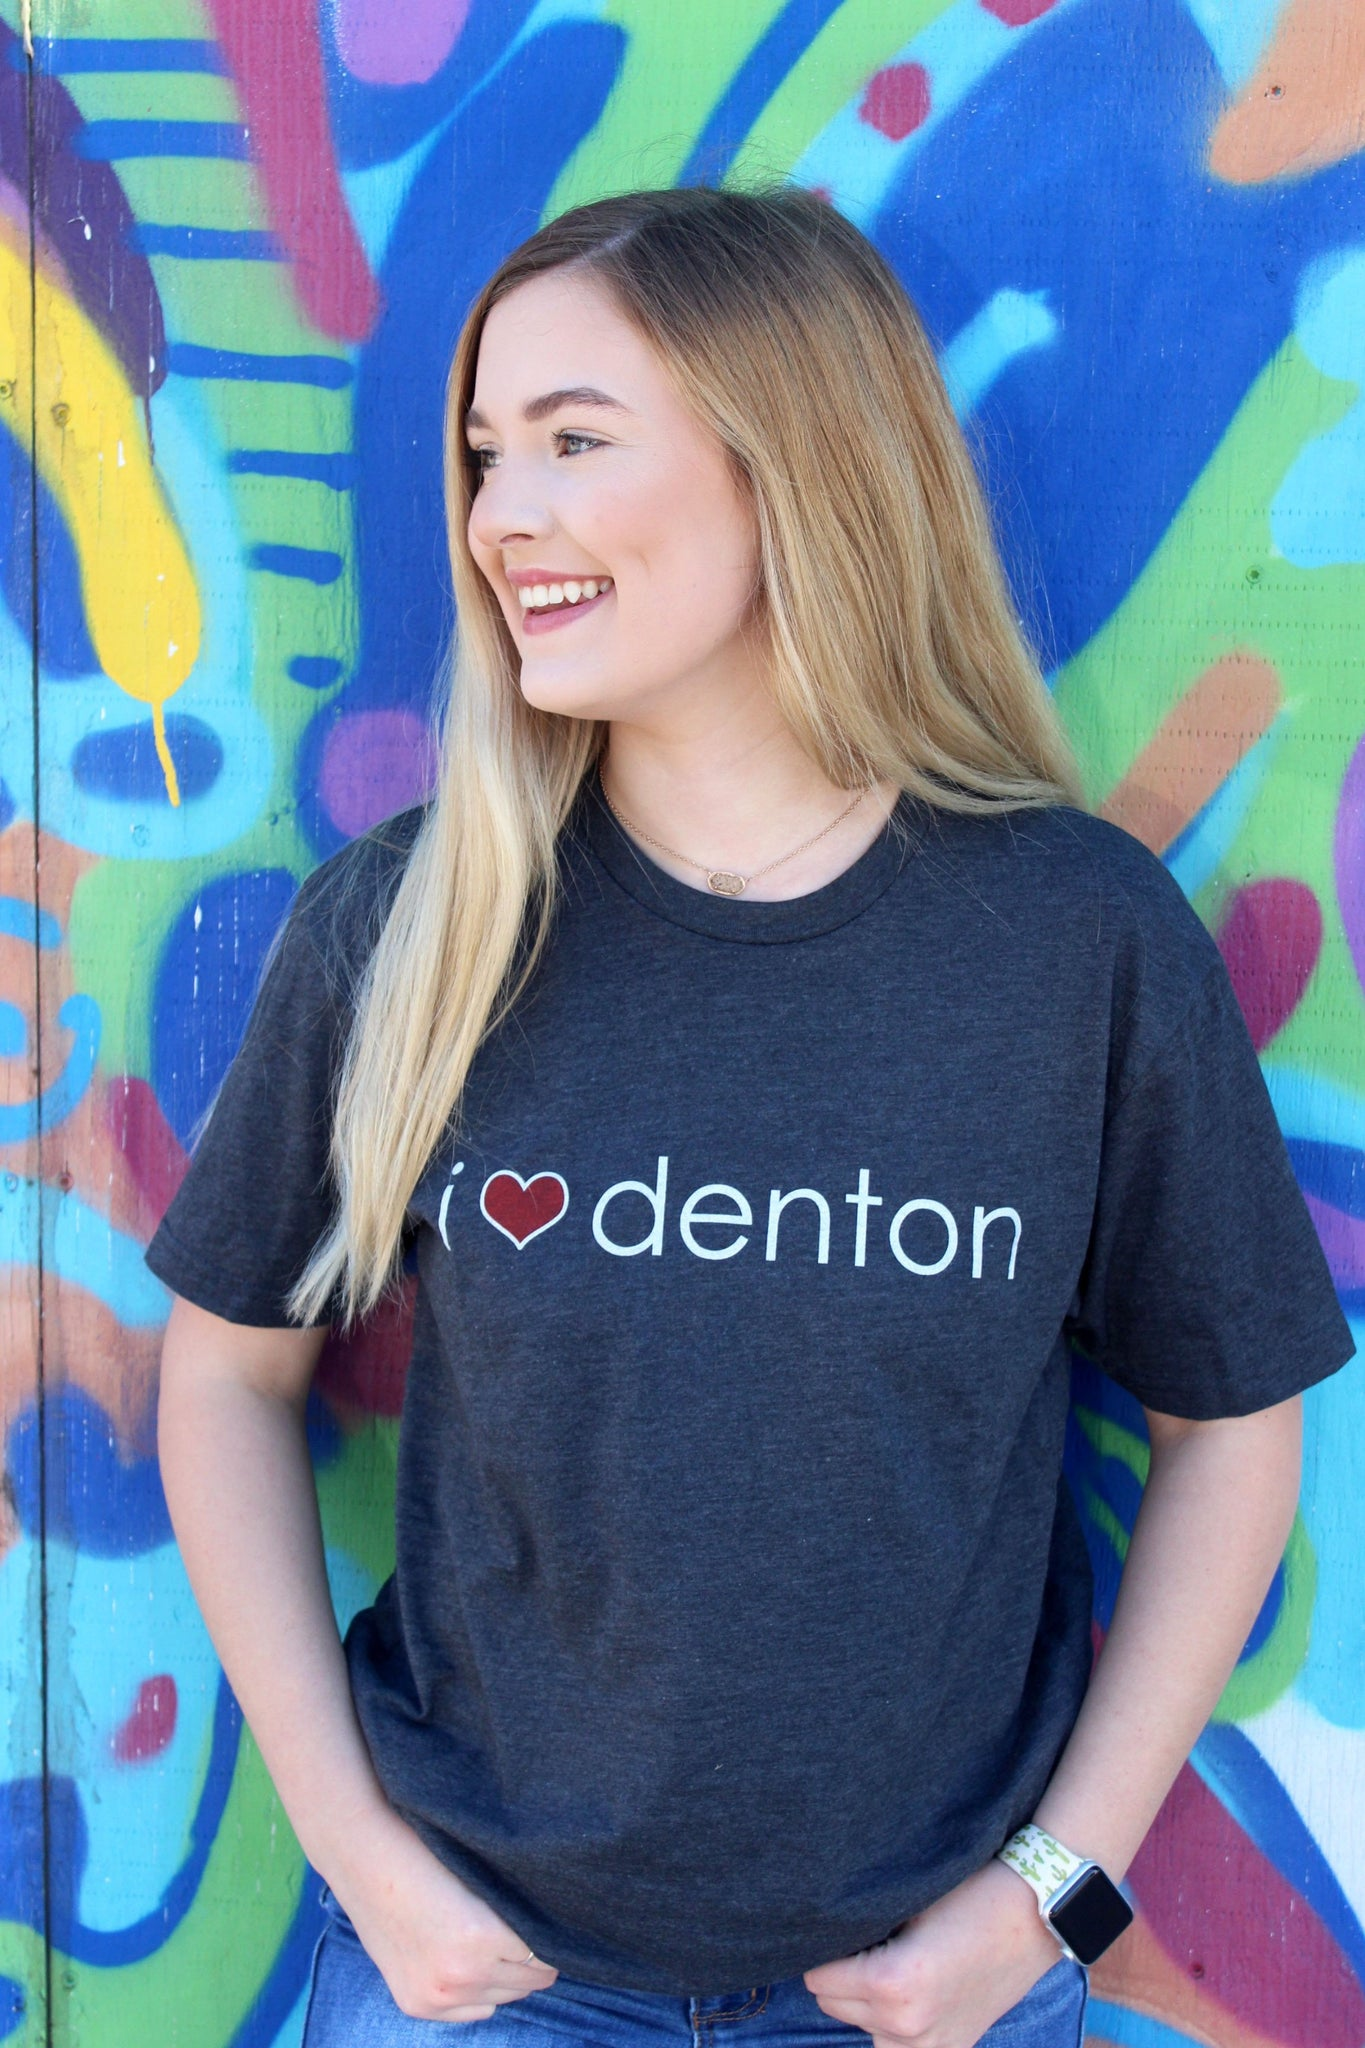 I Heart Denton T-Shirt